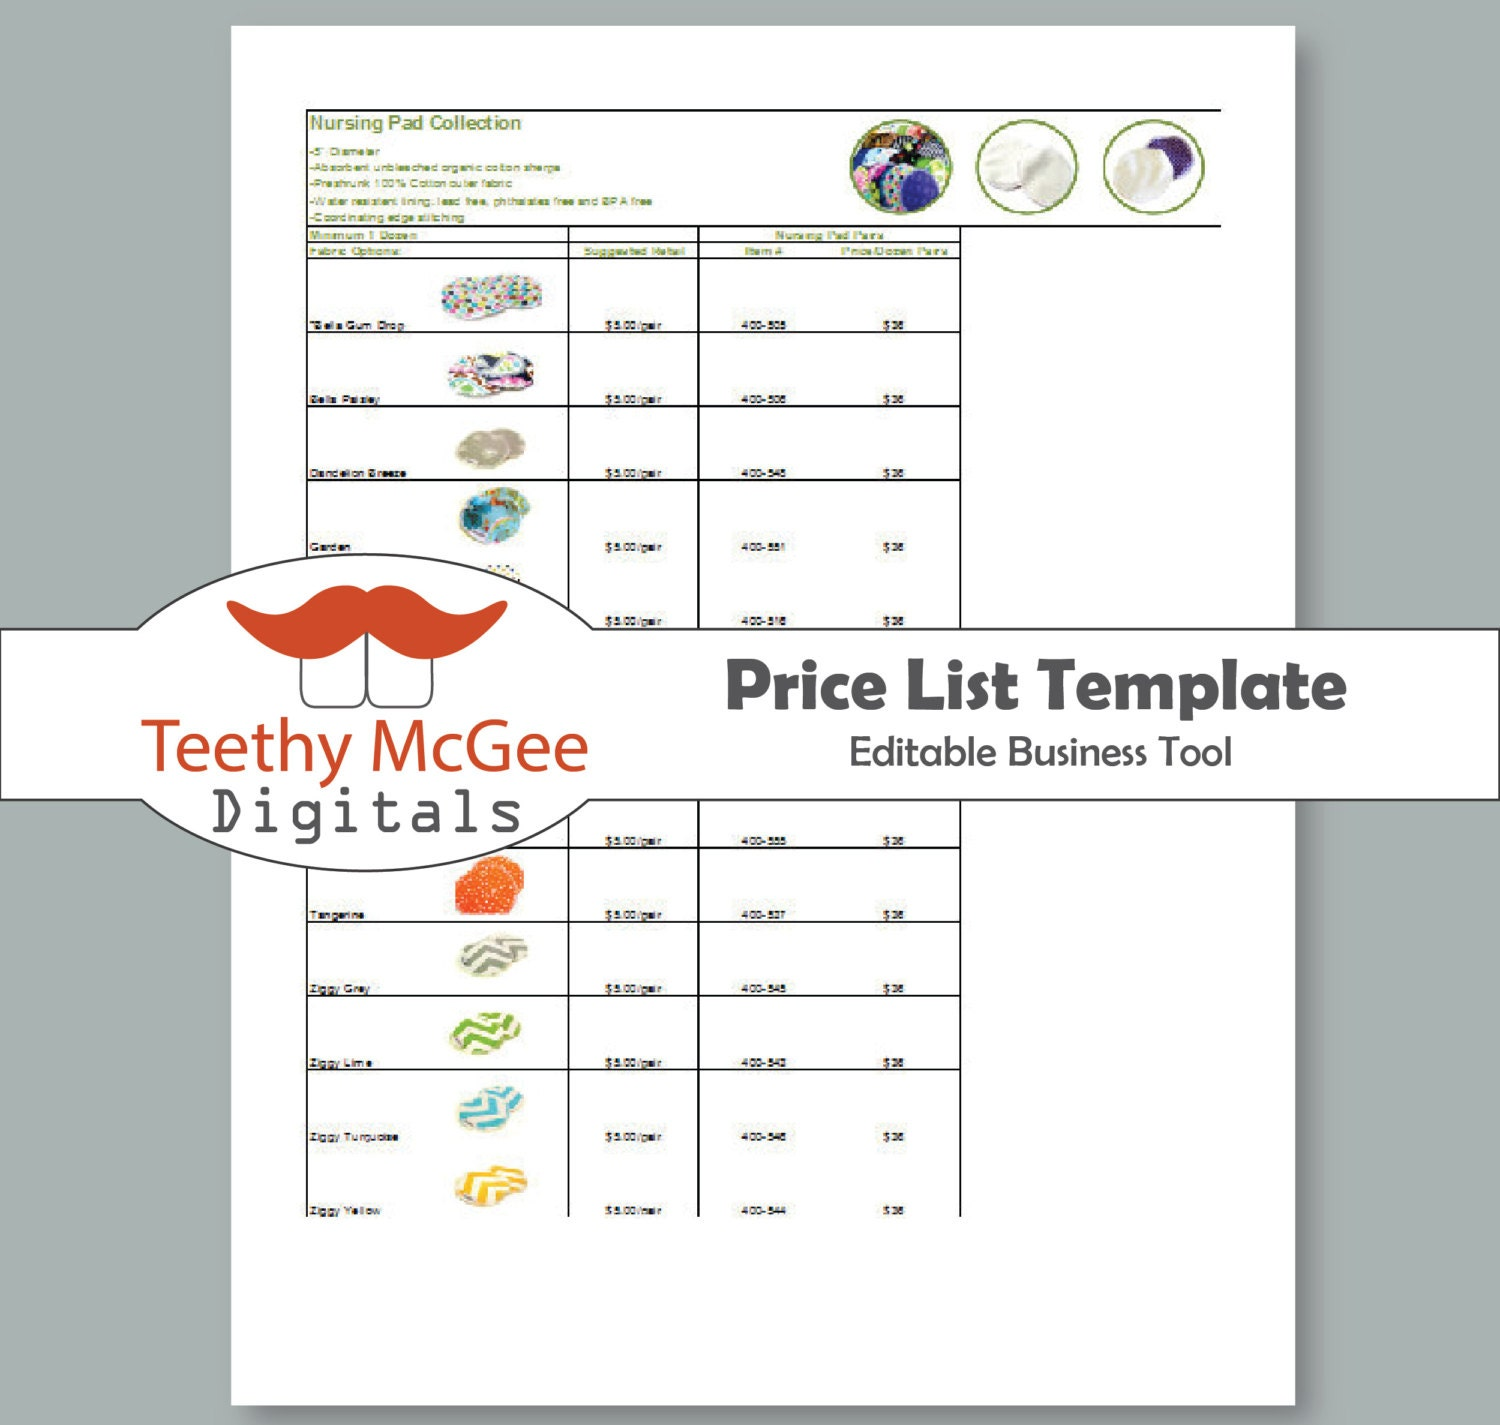 price list template download - Free Price List Template